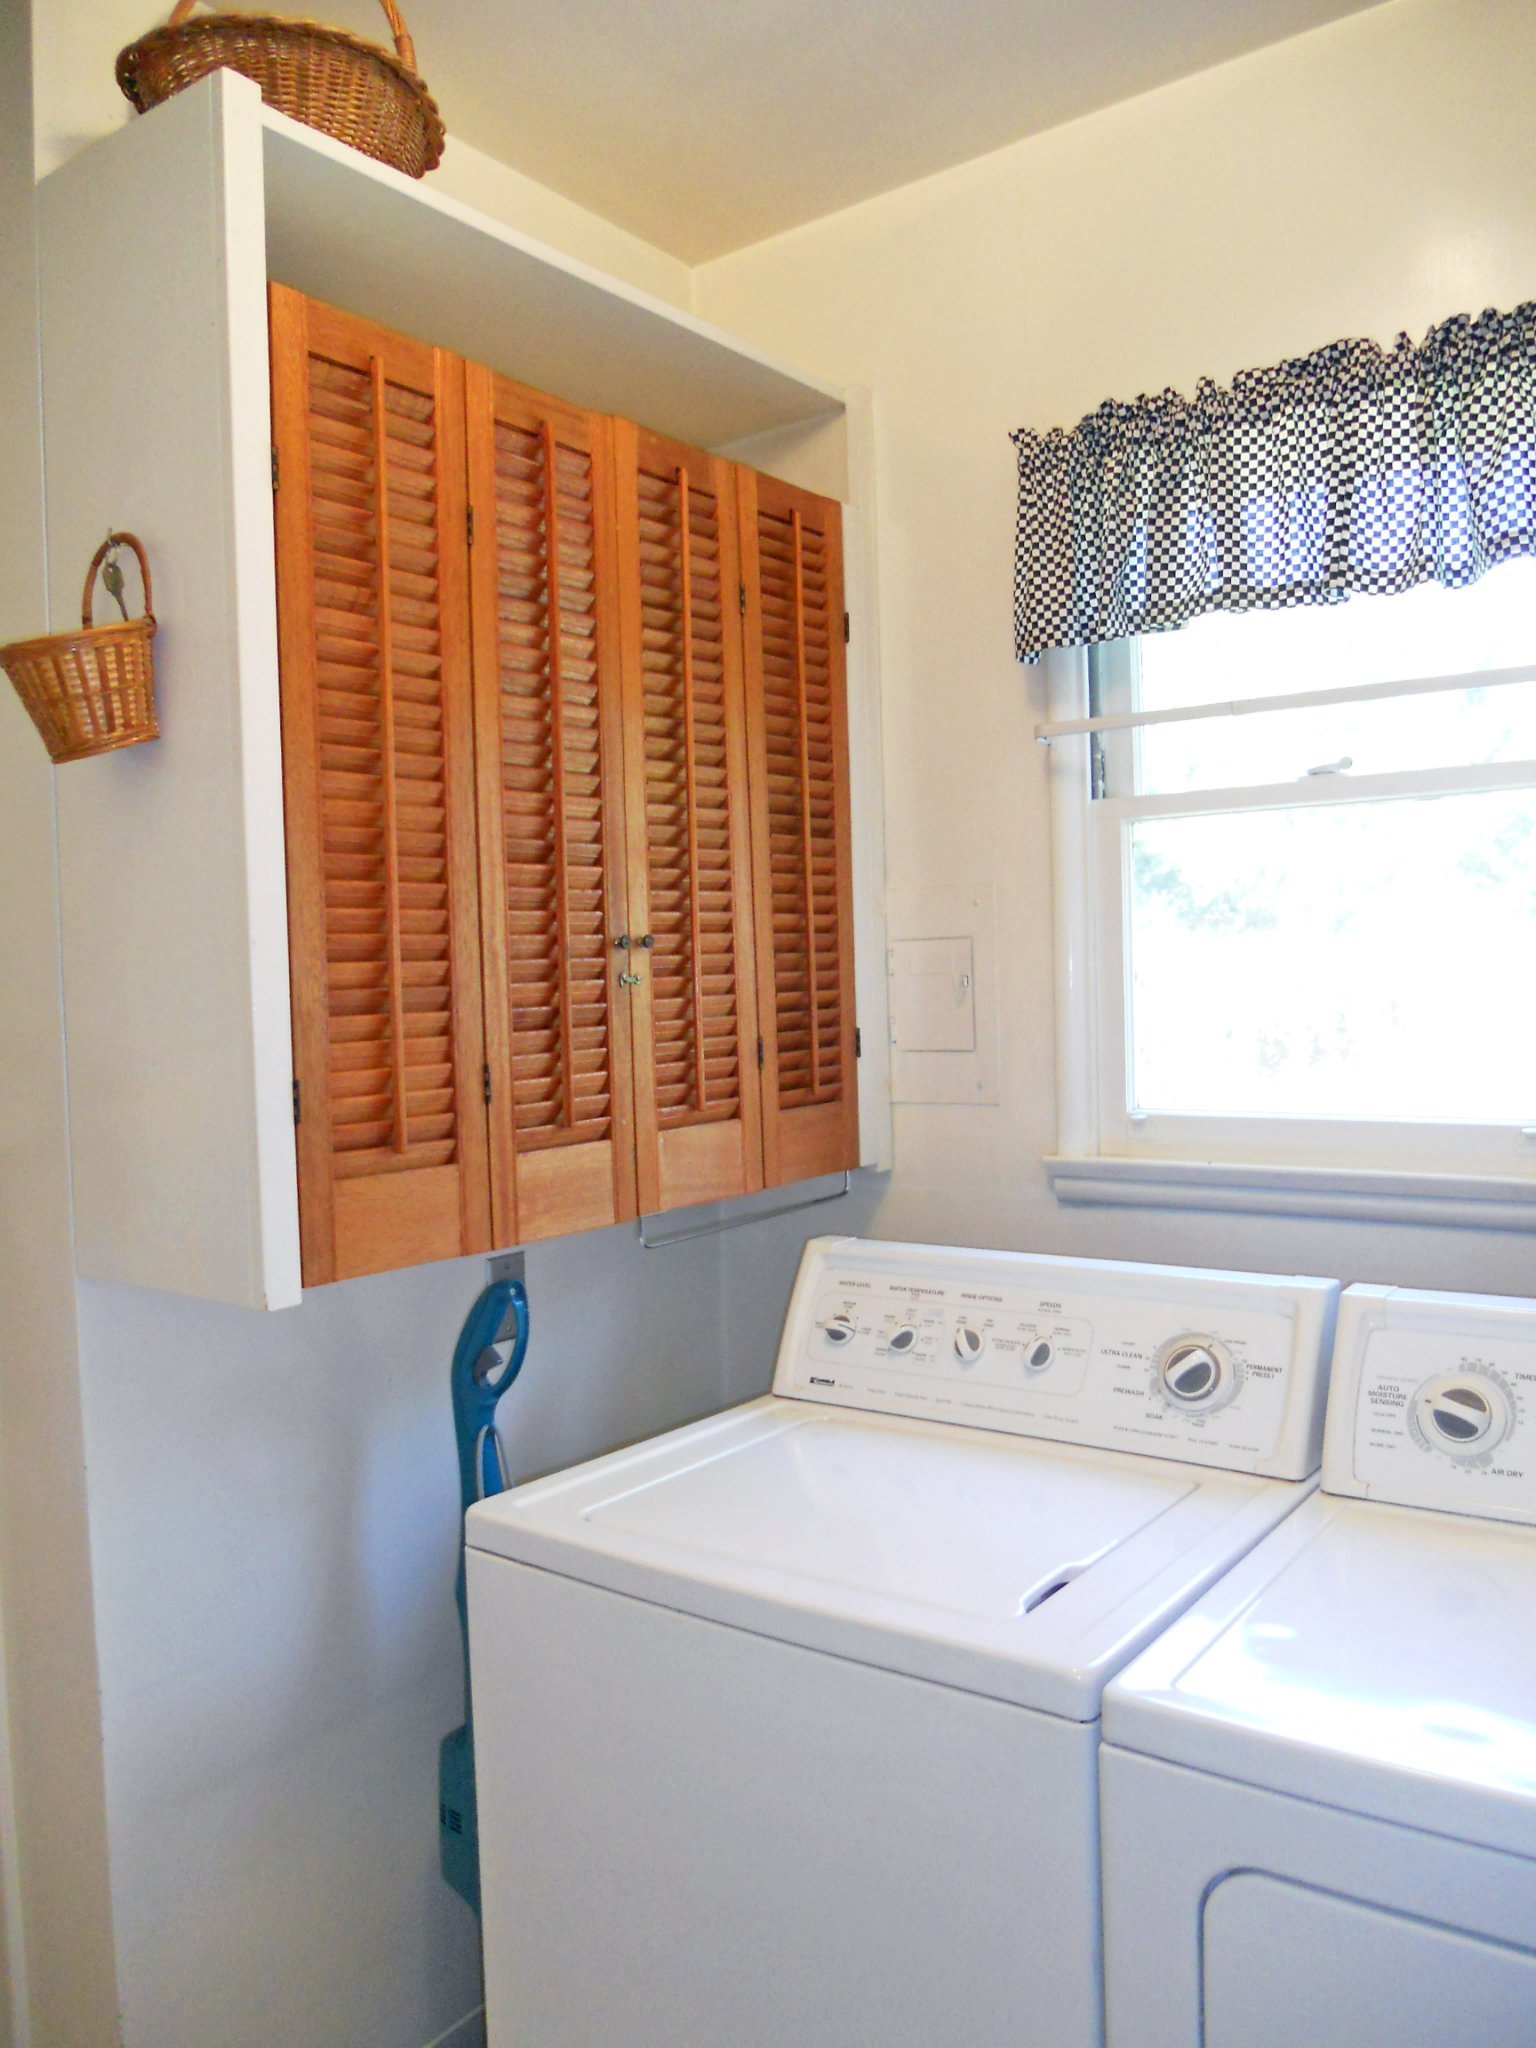 Alternate view of laundry room with more storage (washer and dryer are included).